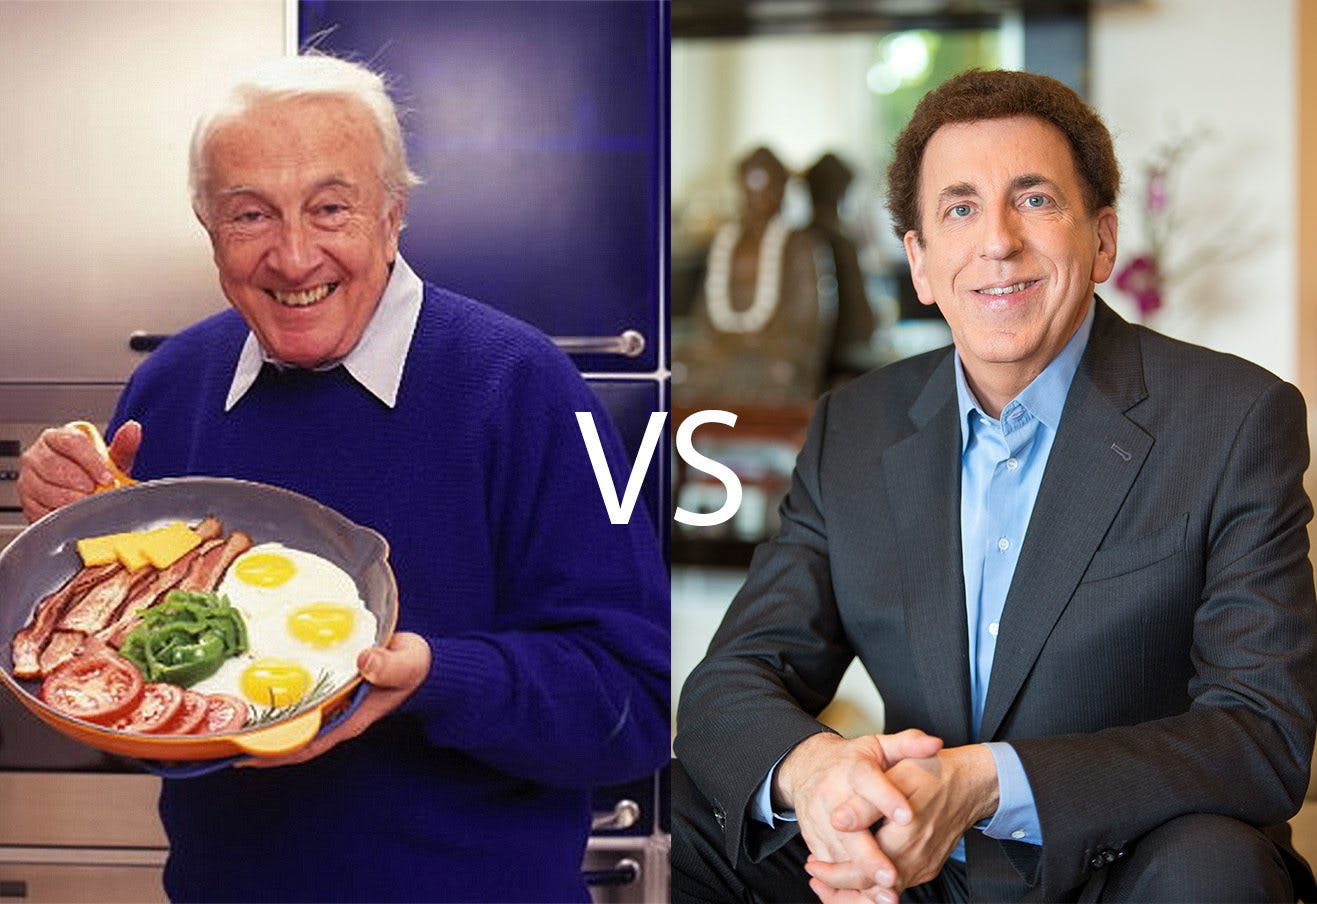 The Rivalry Between Atkins and Ornish: Low Carb Vs. High Carb